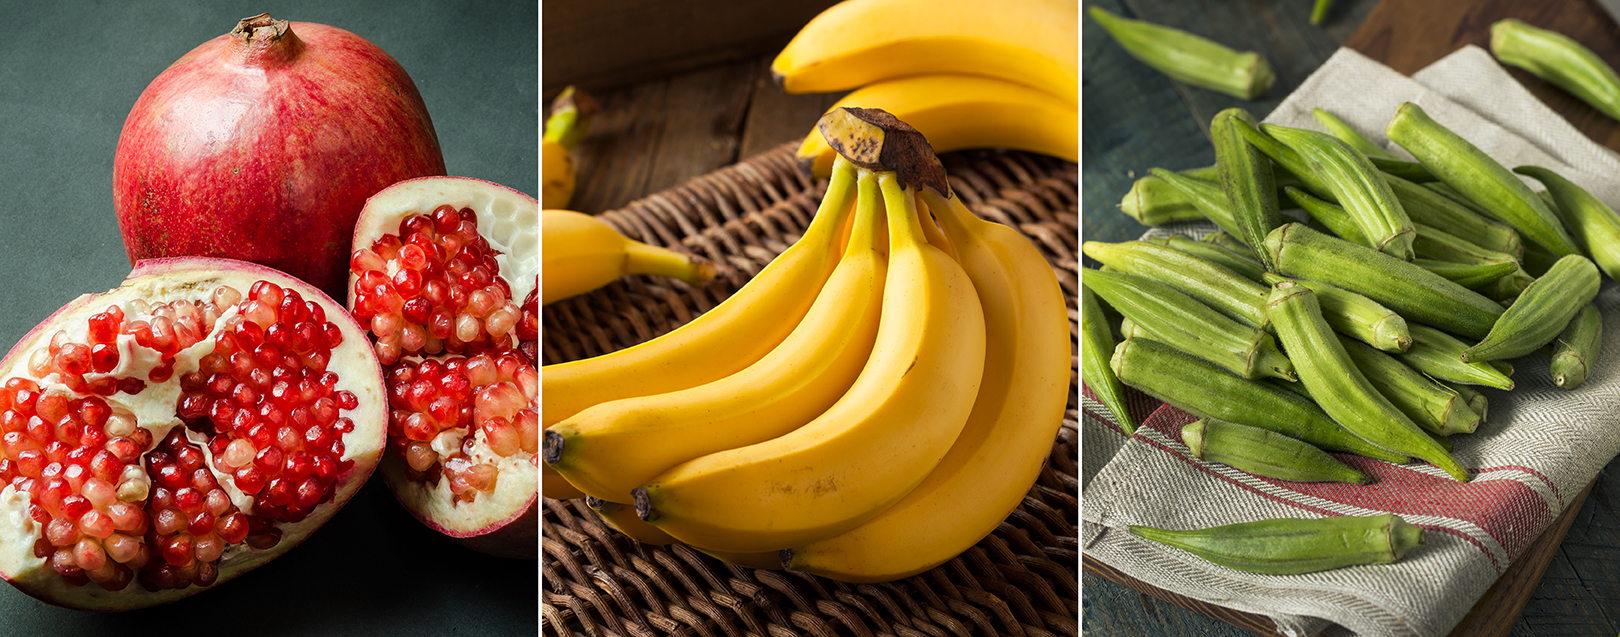 Canada allows imports of Indian pomegranates, banana and okra for the first time